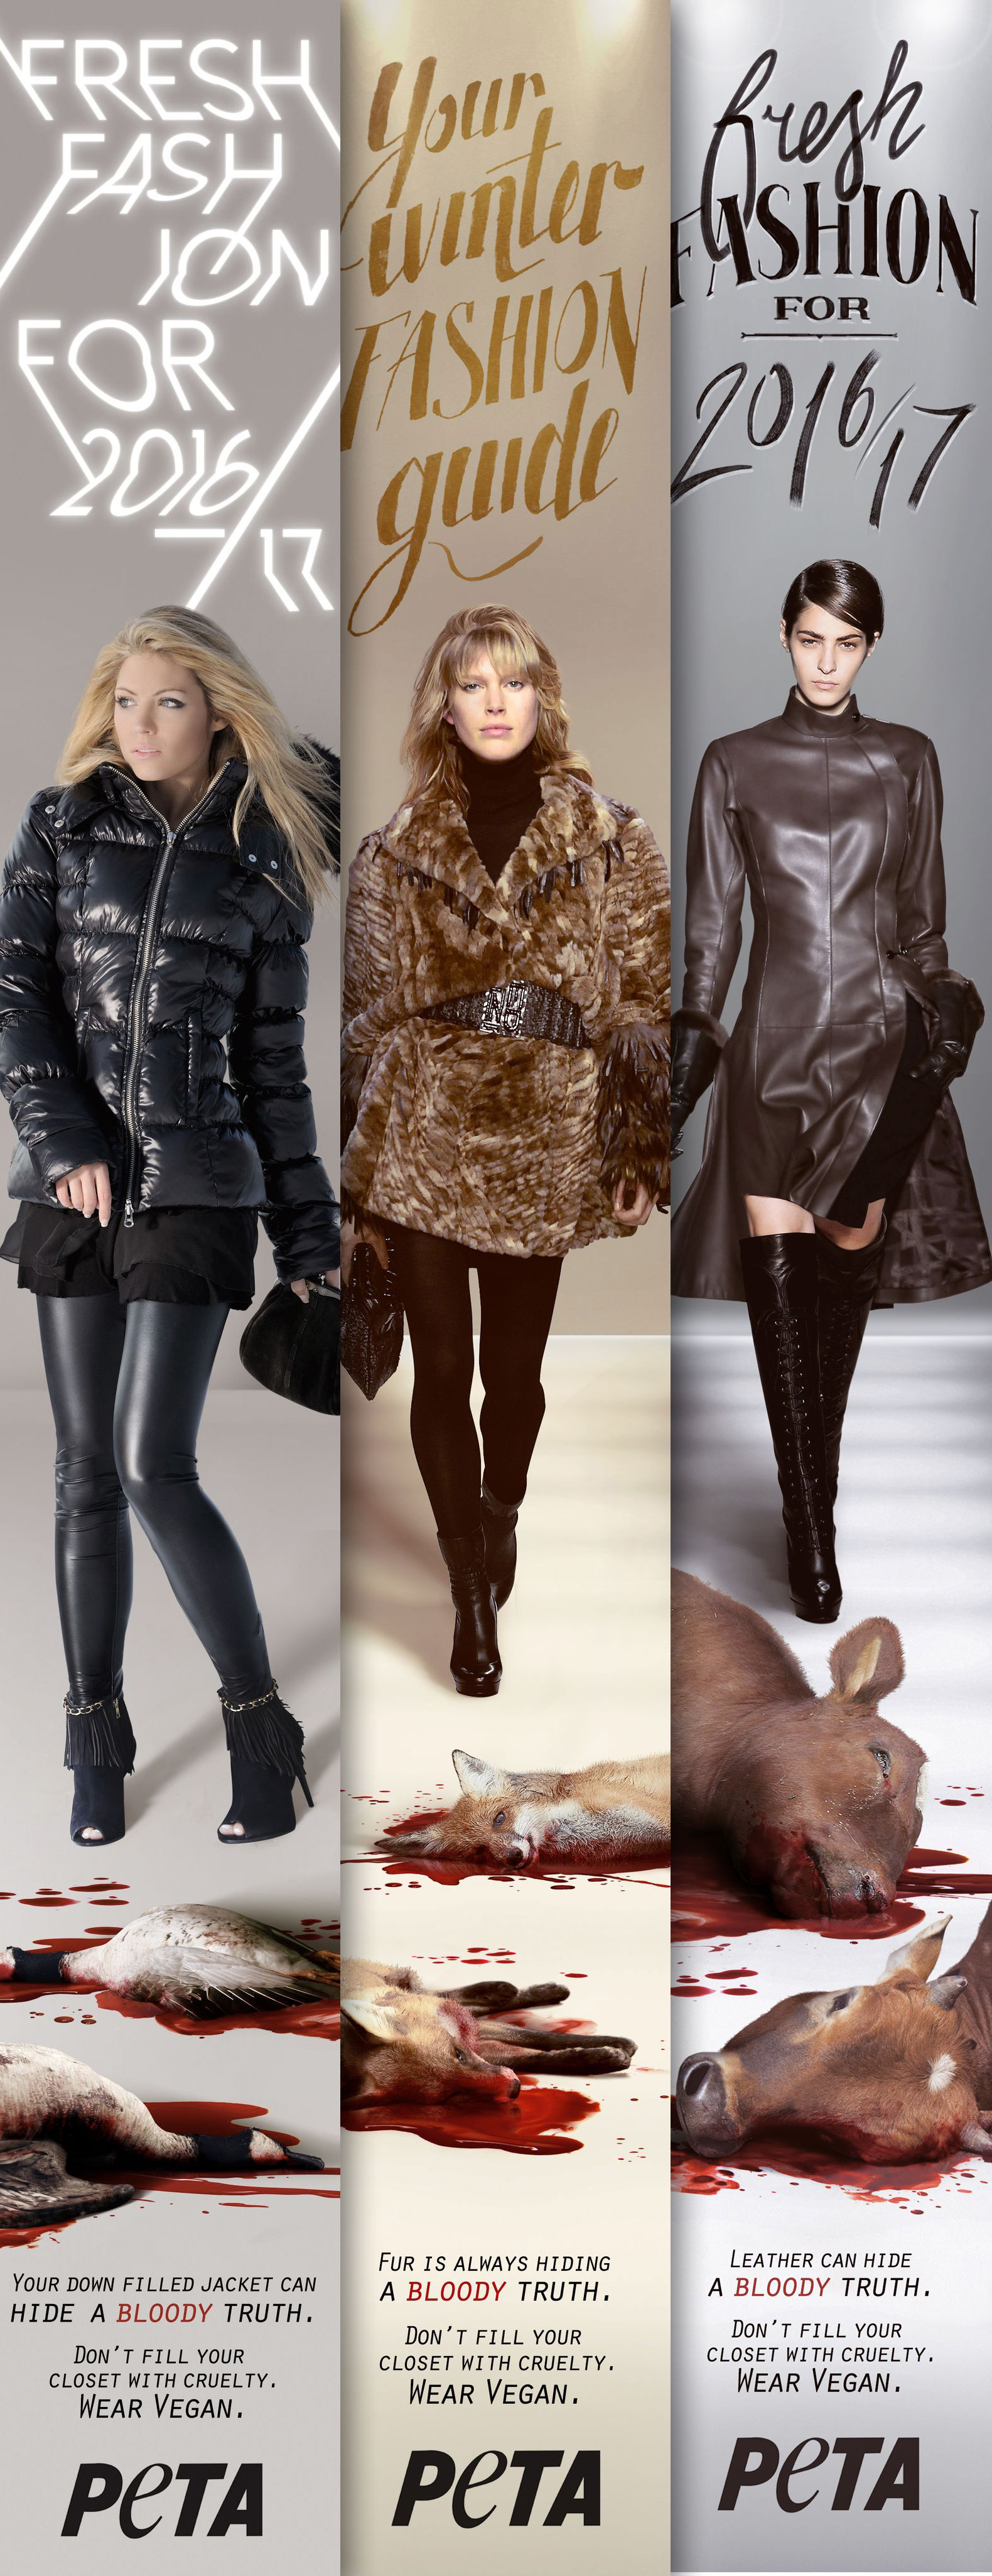 Pinterest, People for the Ethical Treatment of Animals, PETA, fur, animal fur, down, animal leather, leather, eco-fashion, sustainable fashion, green fashion, ethical fashion, sustainable style, London Fashion Week, fashion activism, animal cruelty, animal rights, animal welfare, social media